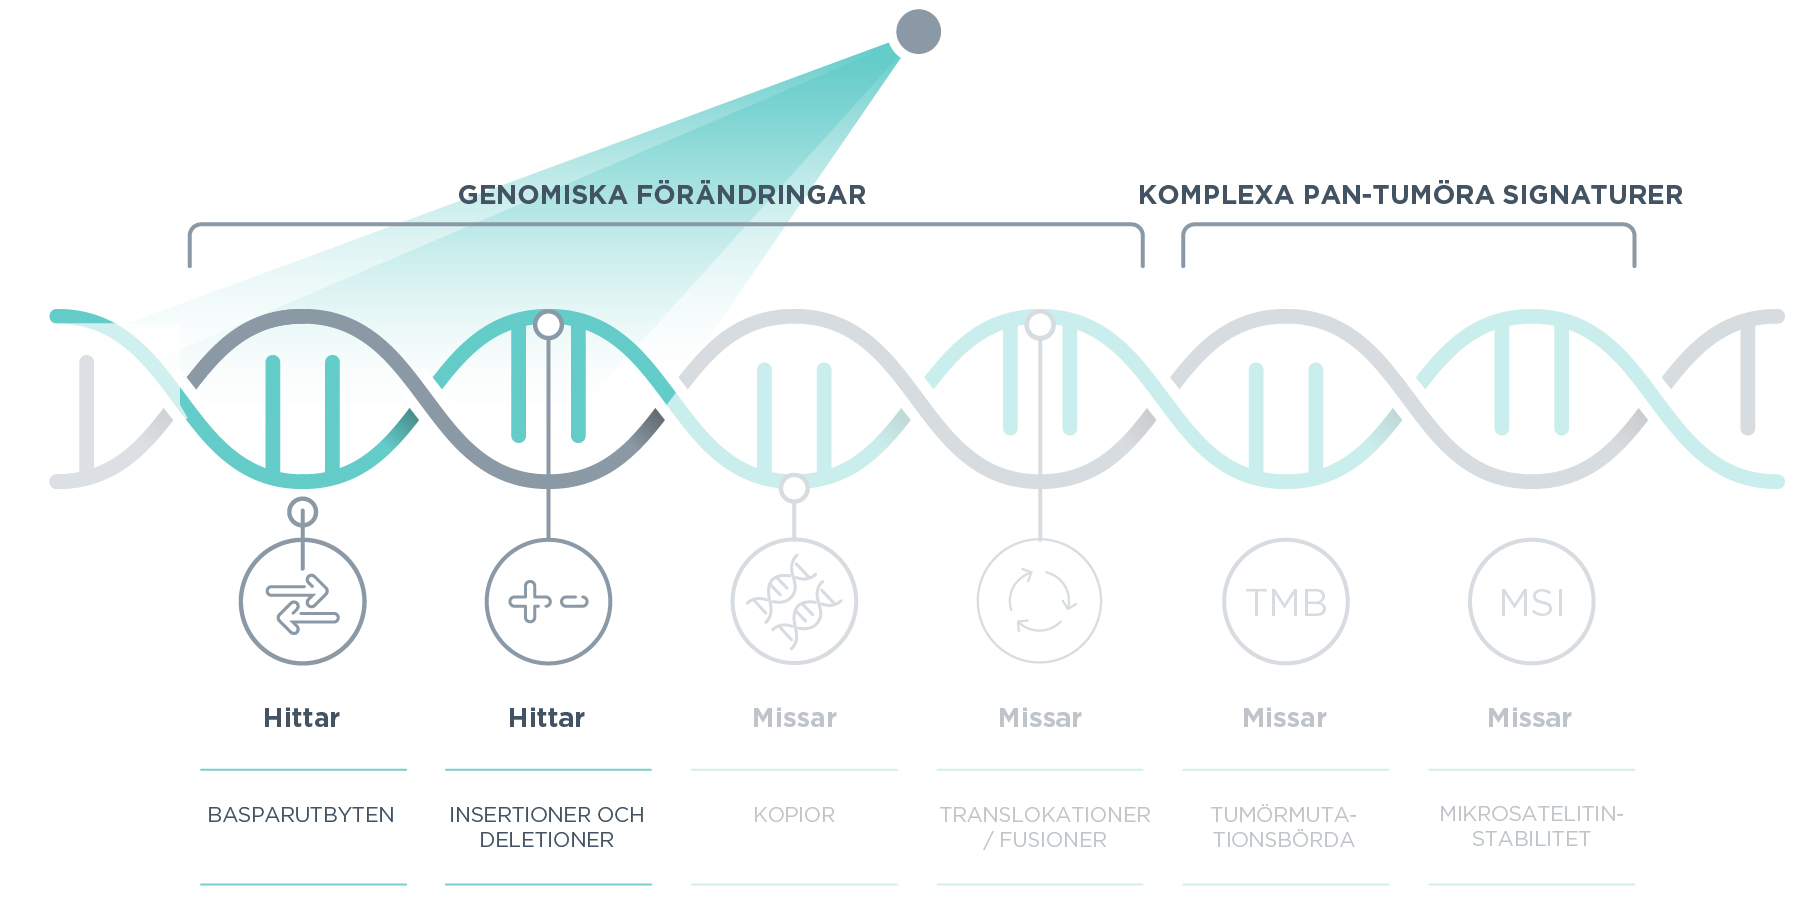 Multigene hotspot tests risk missing genomic alterations while comprehensive genomic profiling broadly analyses the genome to identify all relevant alterations